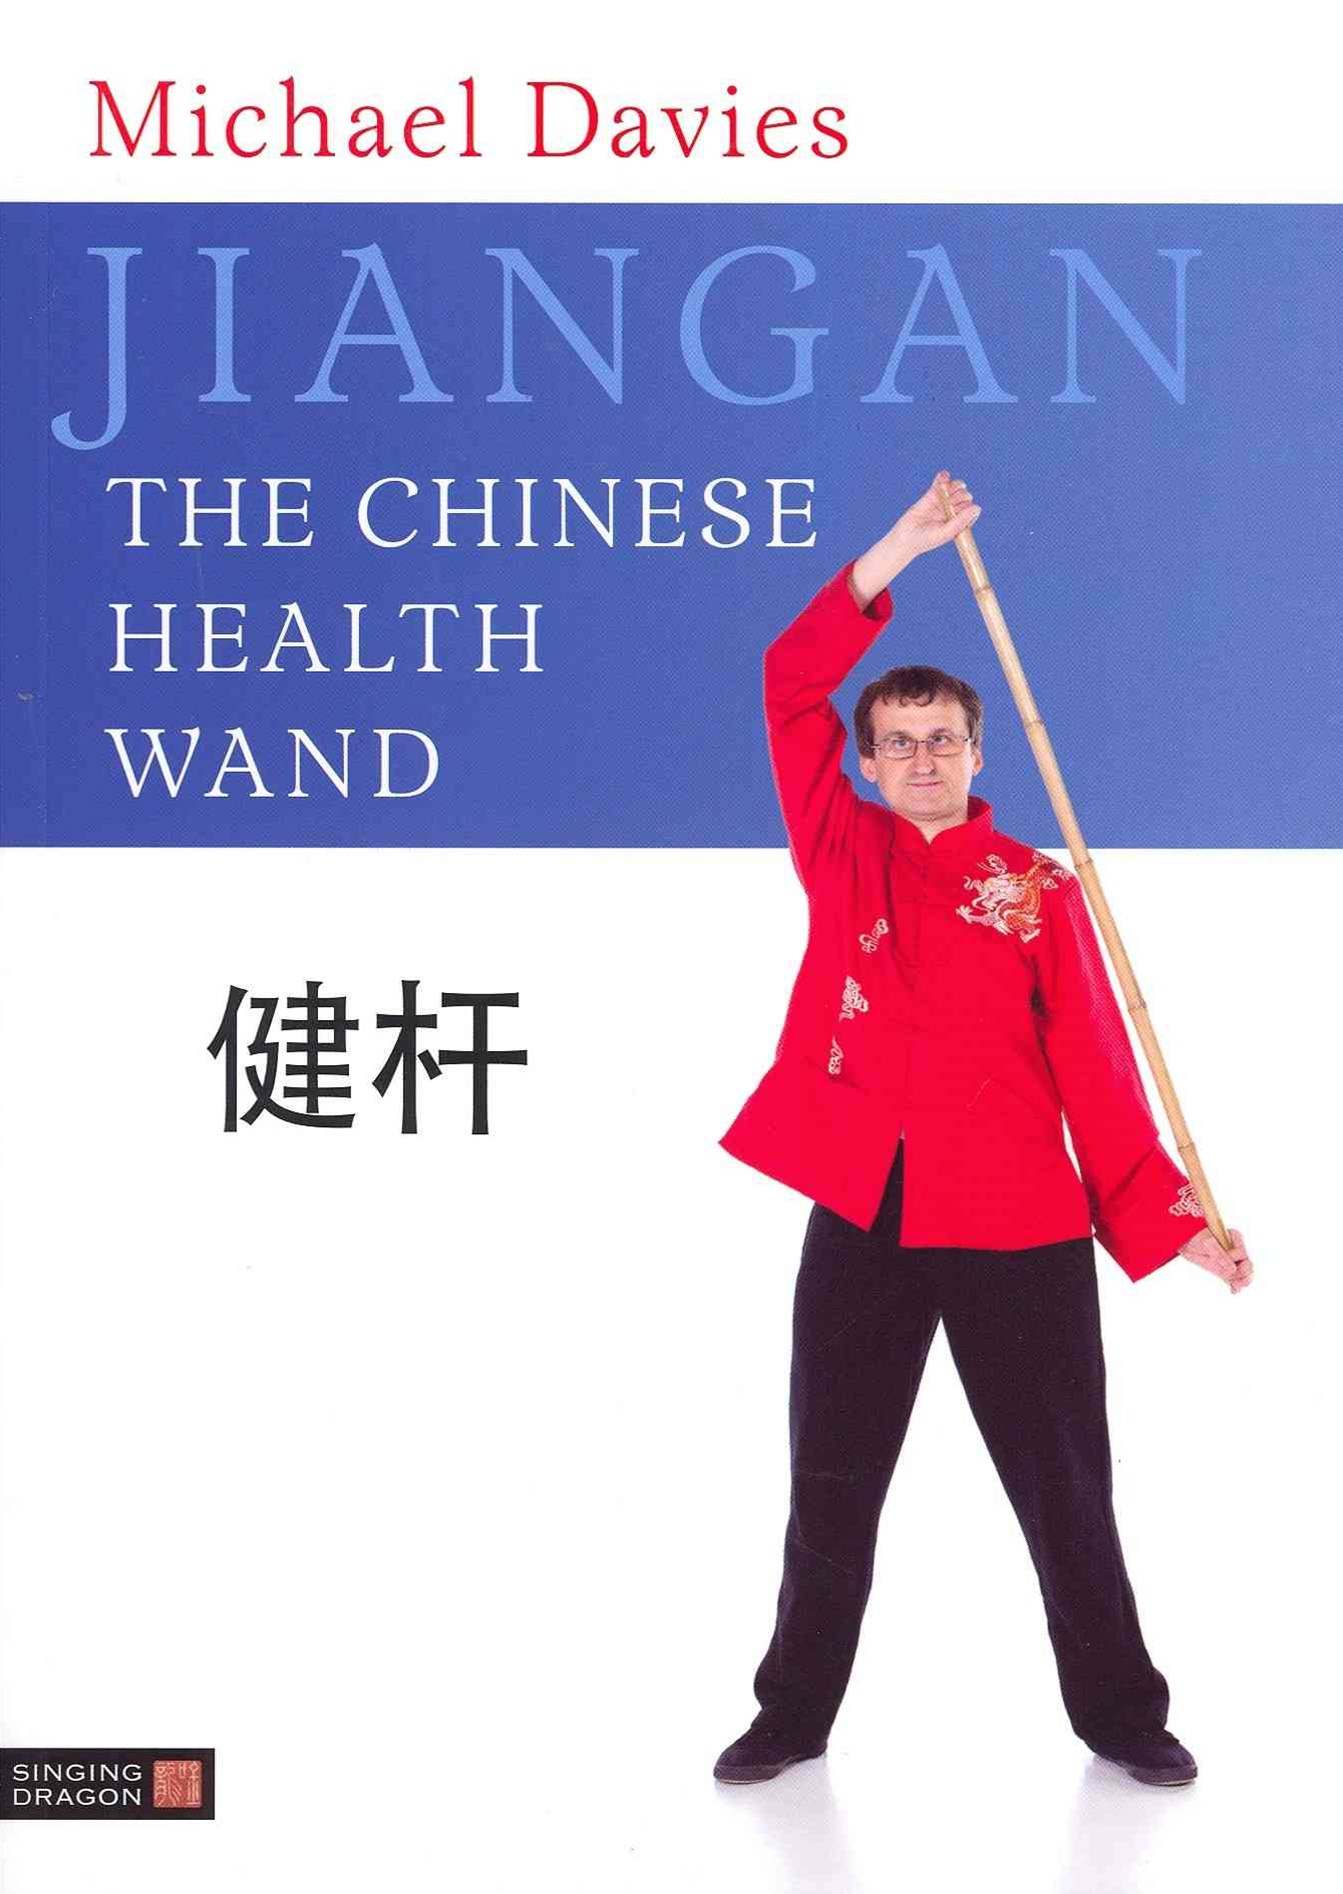 Jiangan - the Chinese Health Wand